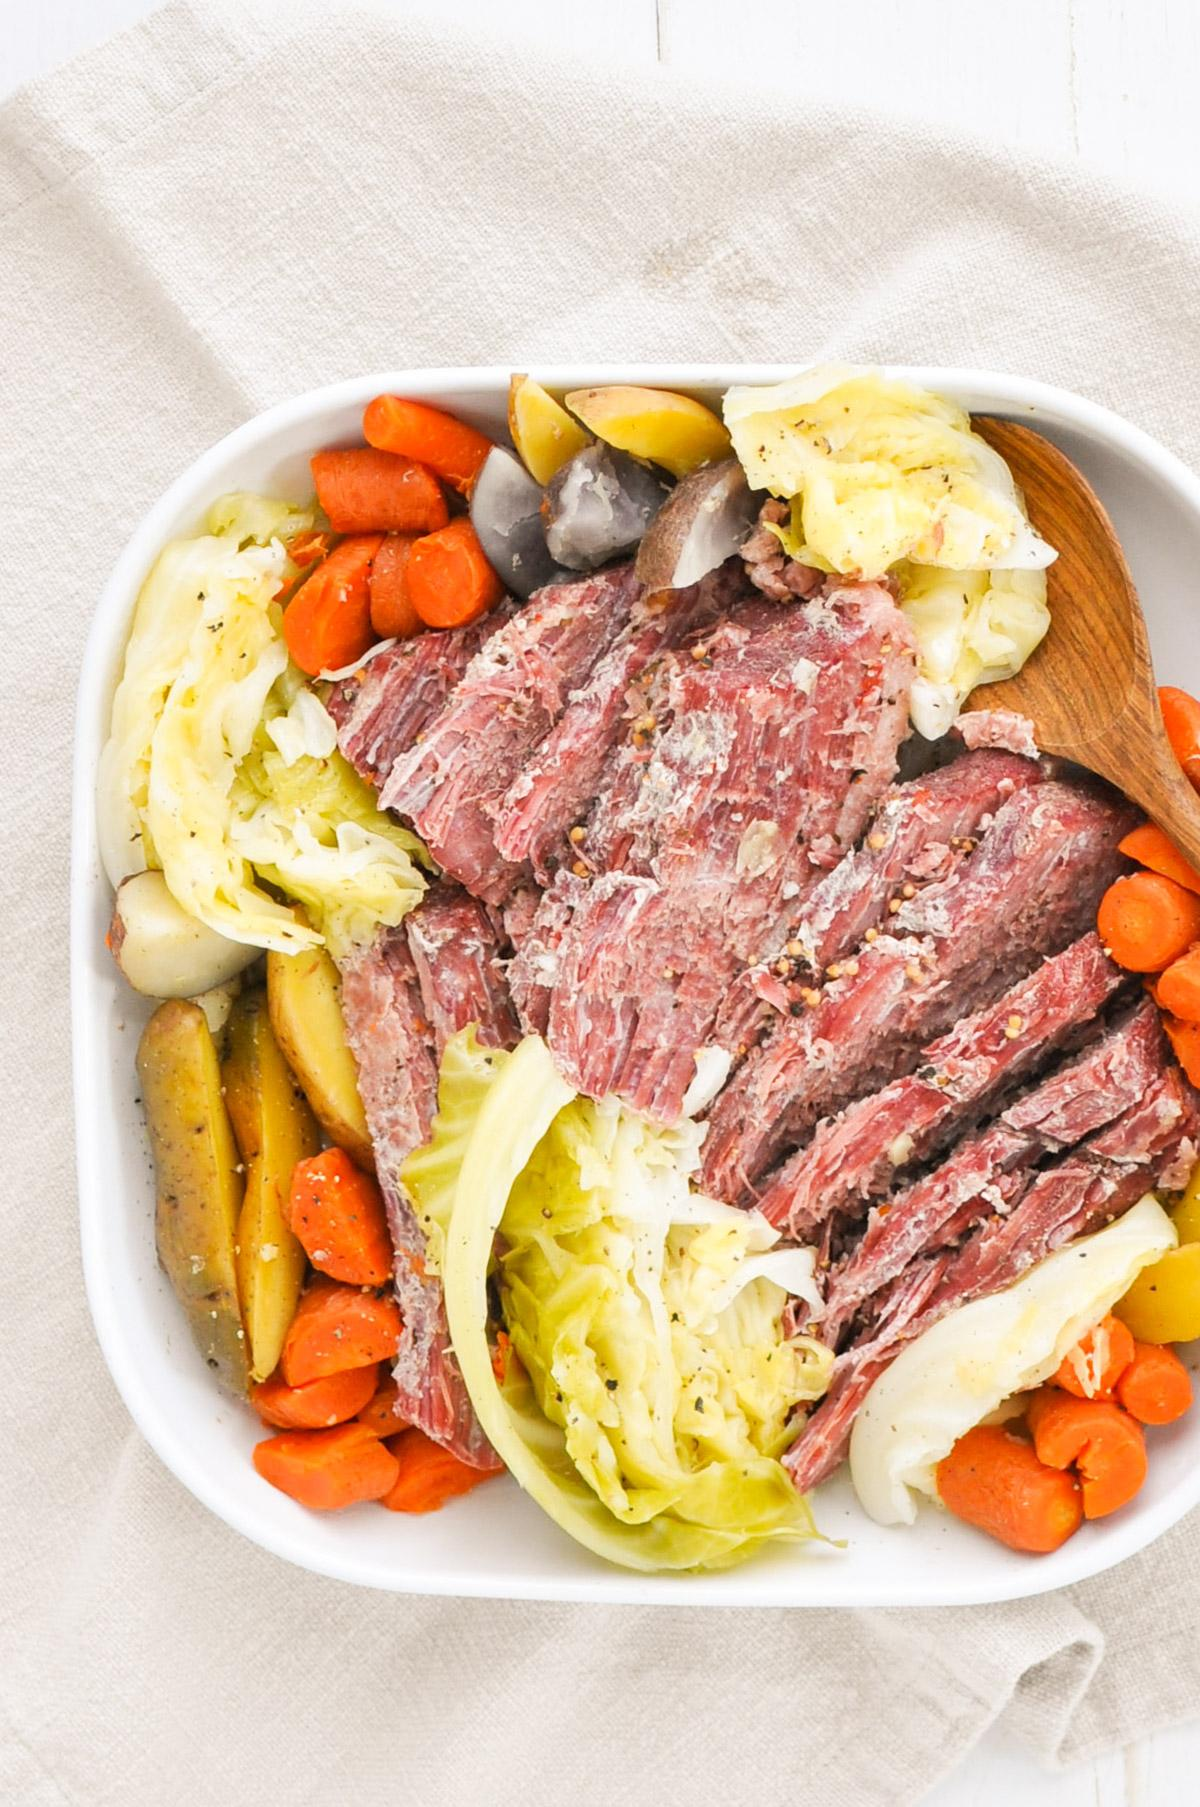 corned beef, cabbage, potatoes, and carrots on a white plate